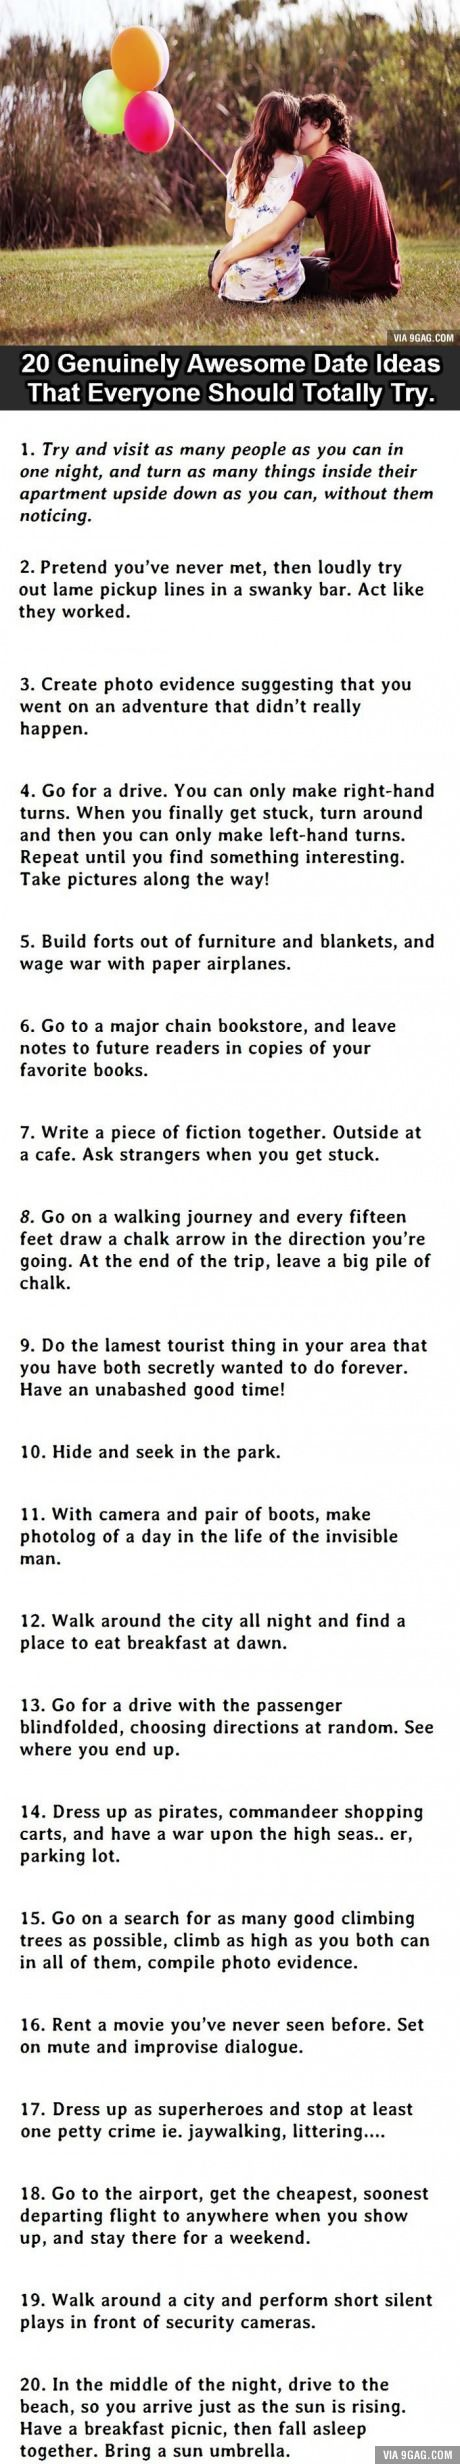 uniquely awesome date ideas doesnut even have to be a date